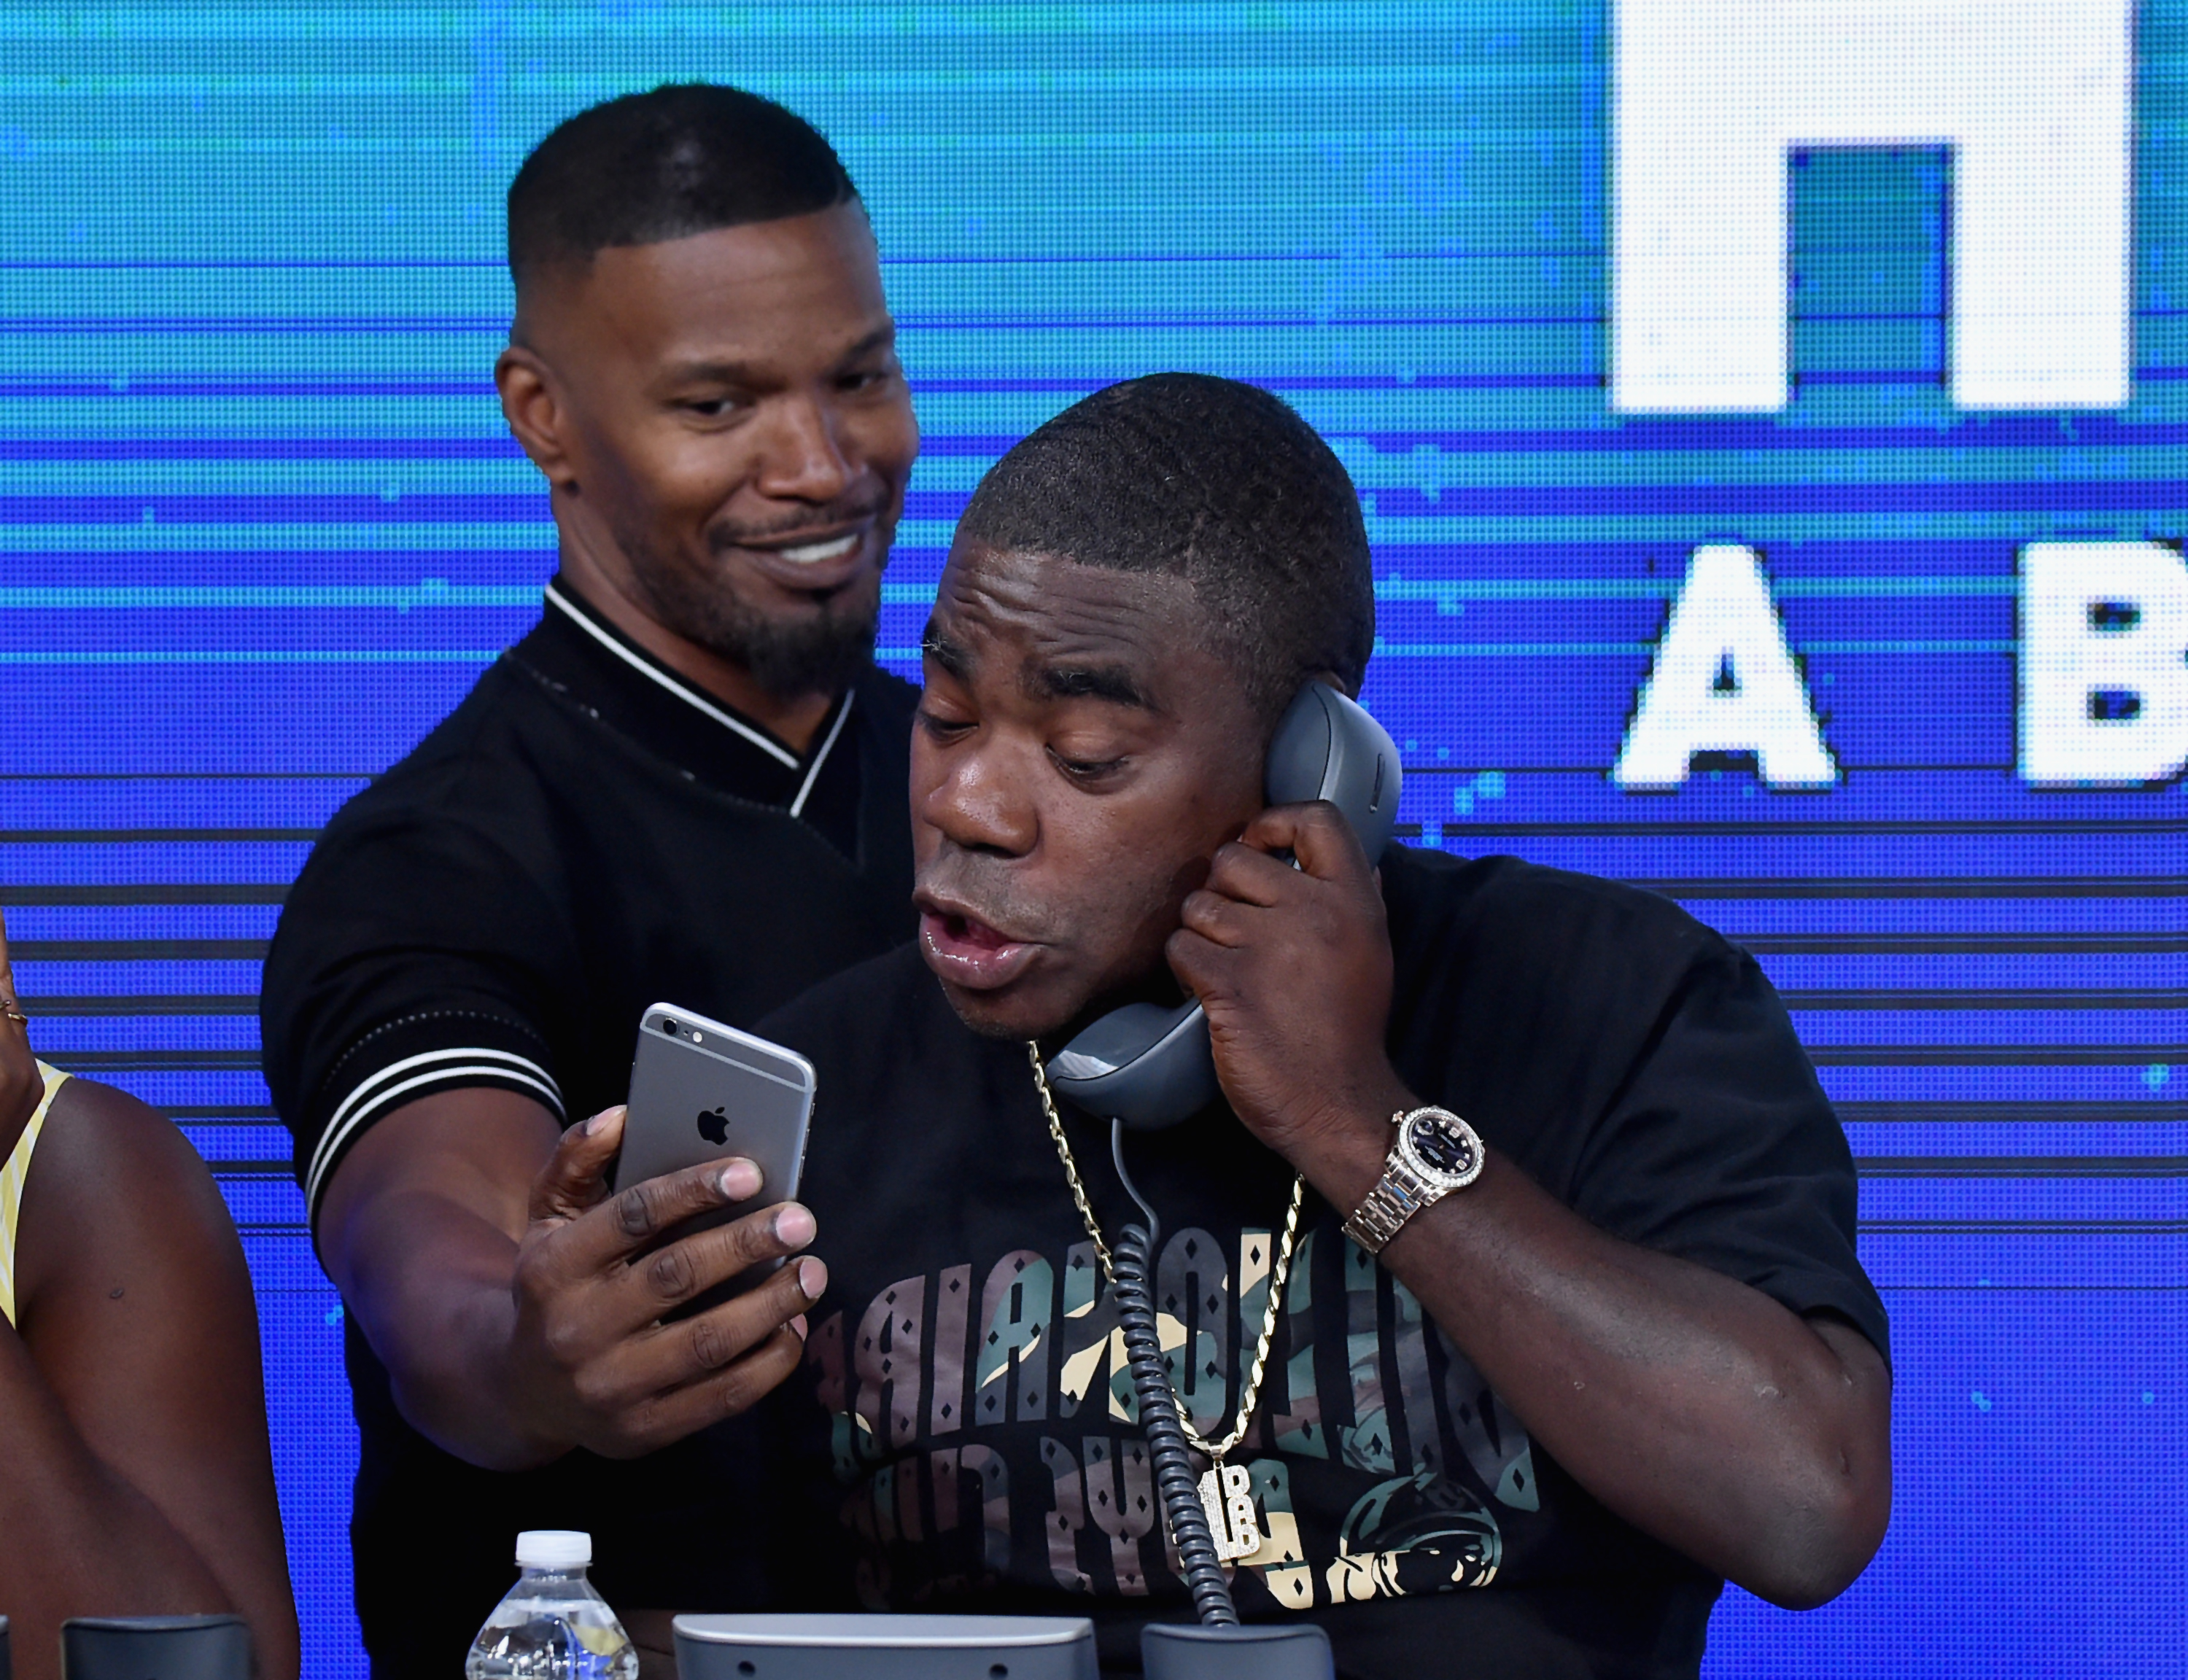 <div class='meta'><div class='origin-logo' data-origin='none'></div><span class='caption-text' data-credit='Theo Wargo/Hand in Hand/Getty Images'>Jamie Foxx and Tracy Morgan attend the Hand in Hand benefit at ABC News' Good Morning America Times Square Studio in New York.</span></div>